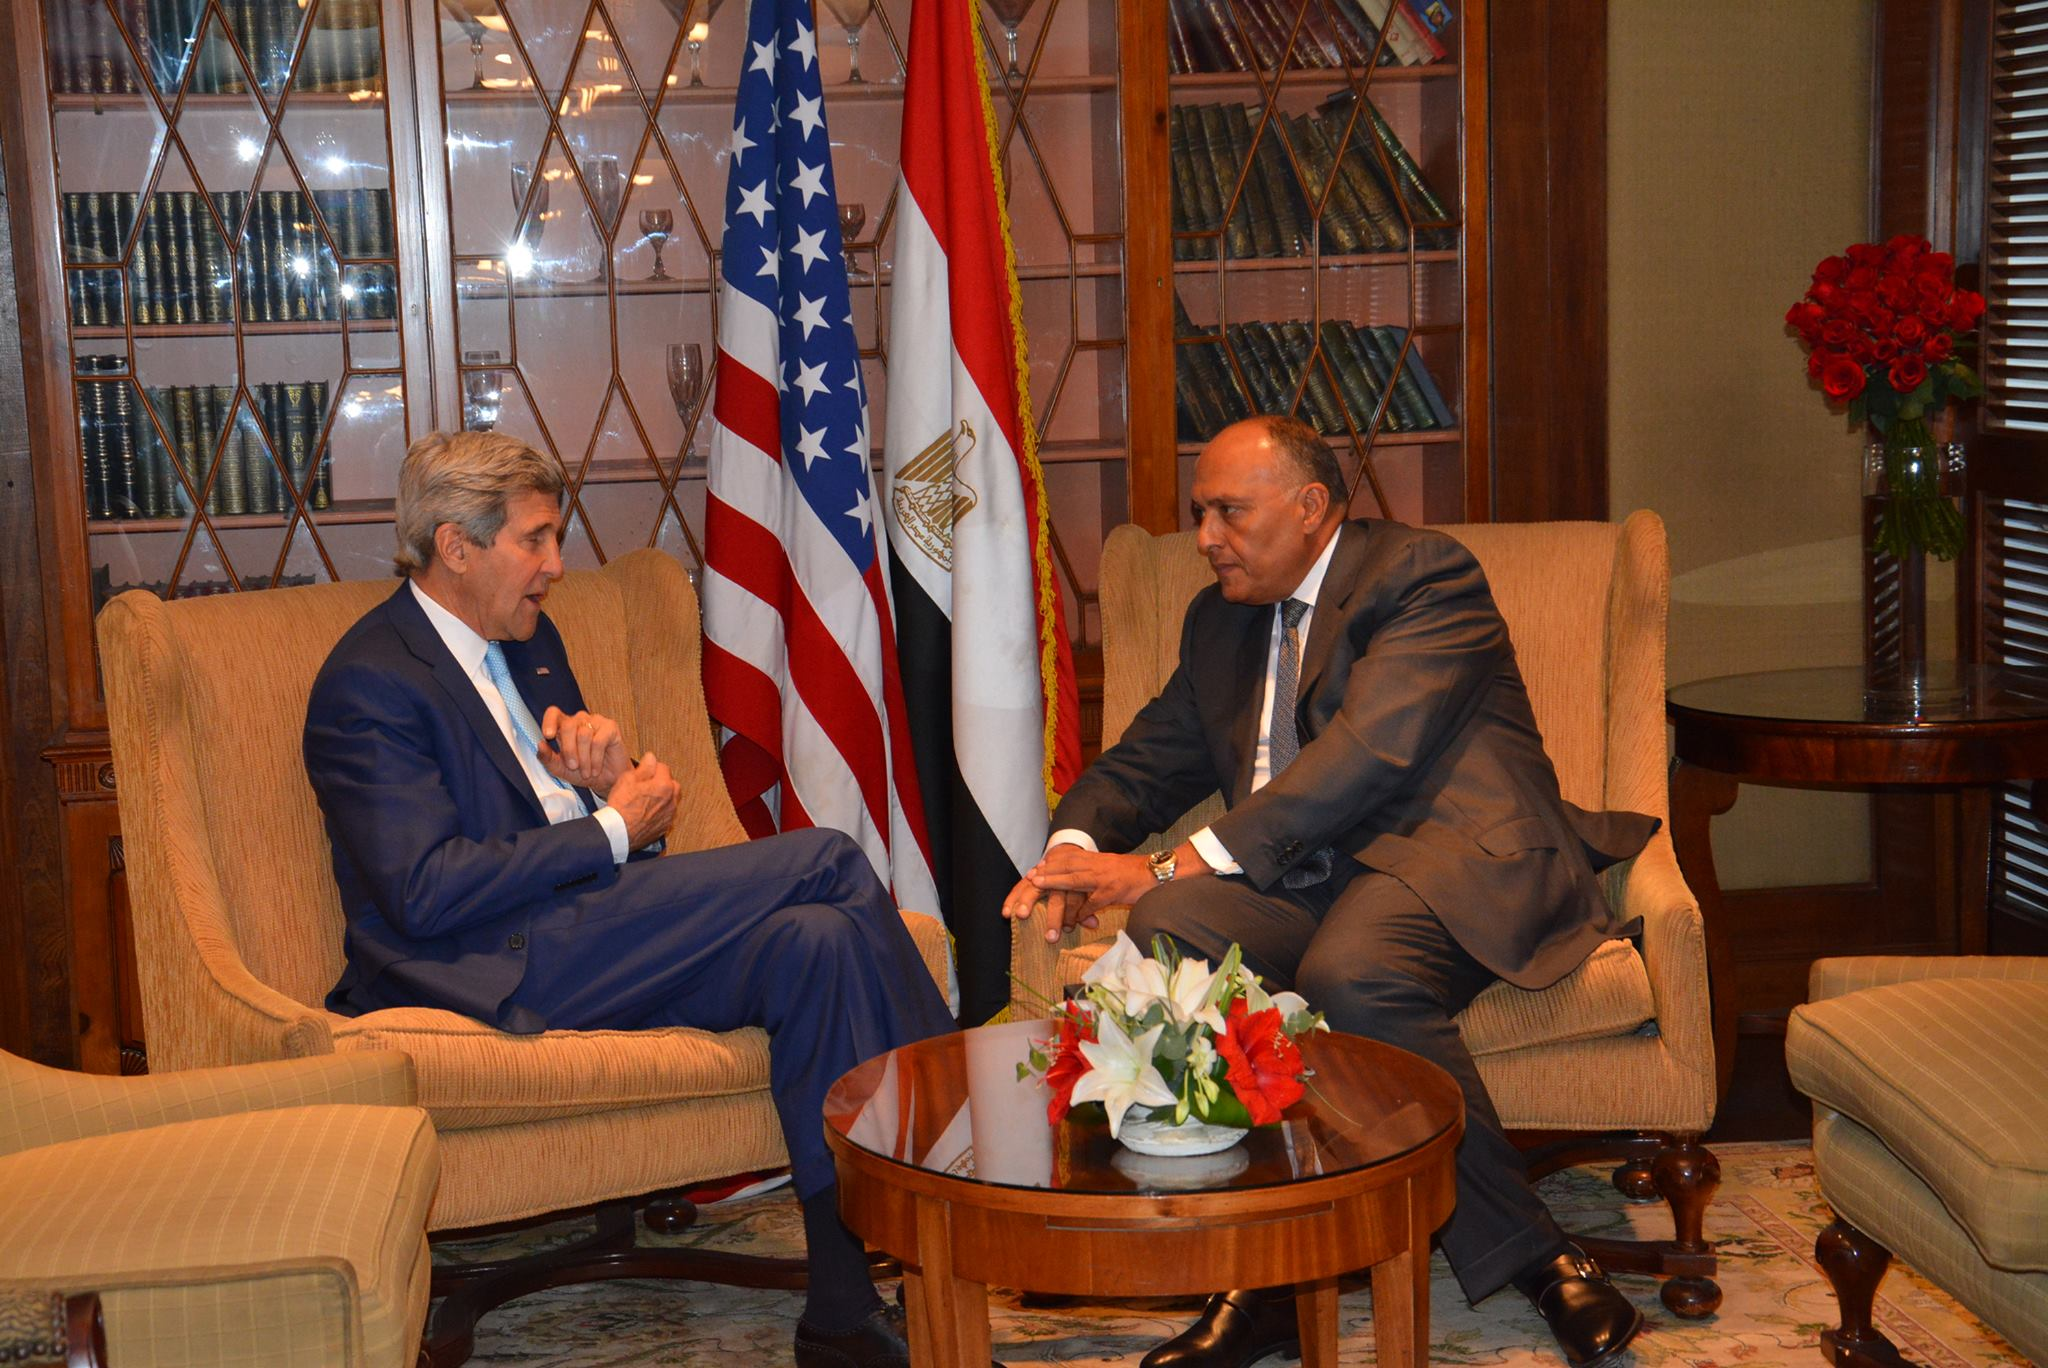 John Kerry and Sameh Shoukry met in Cairo to discuss regional issues  (AFP File photo )